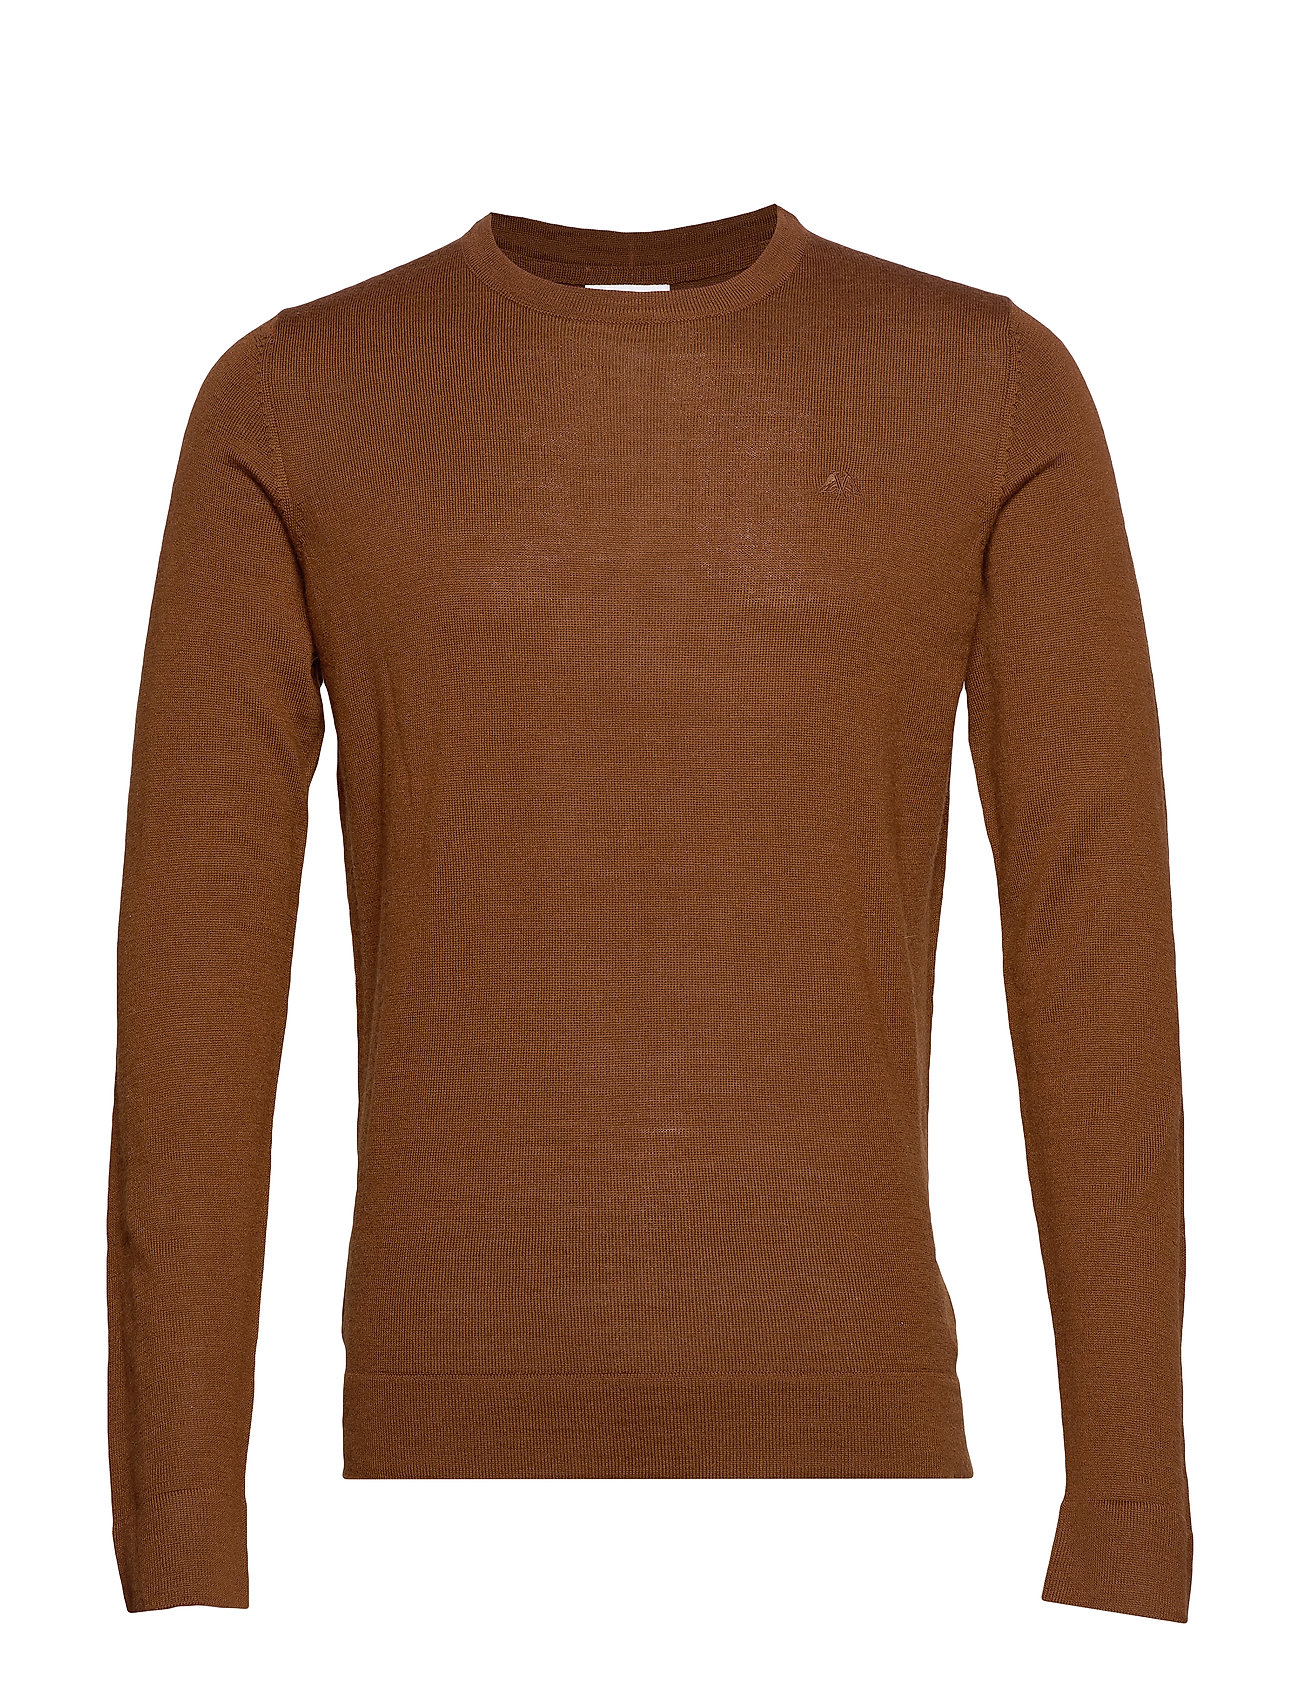 Lindbergh Merino knit o-neck - LT BROWN